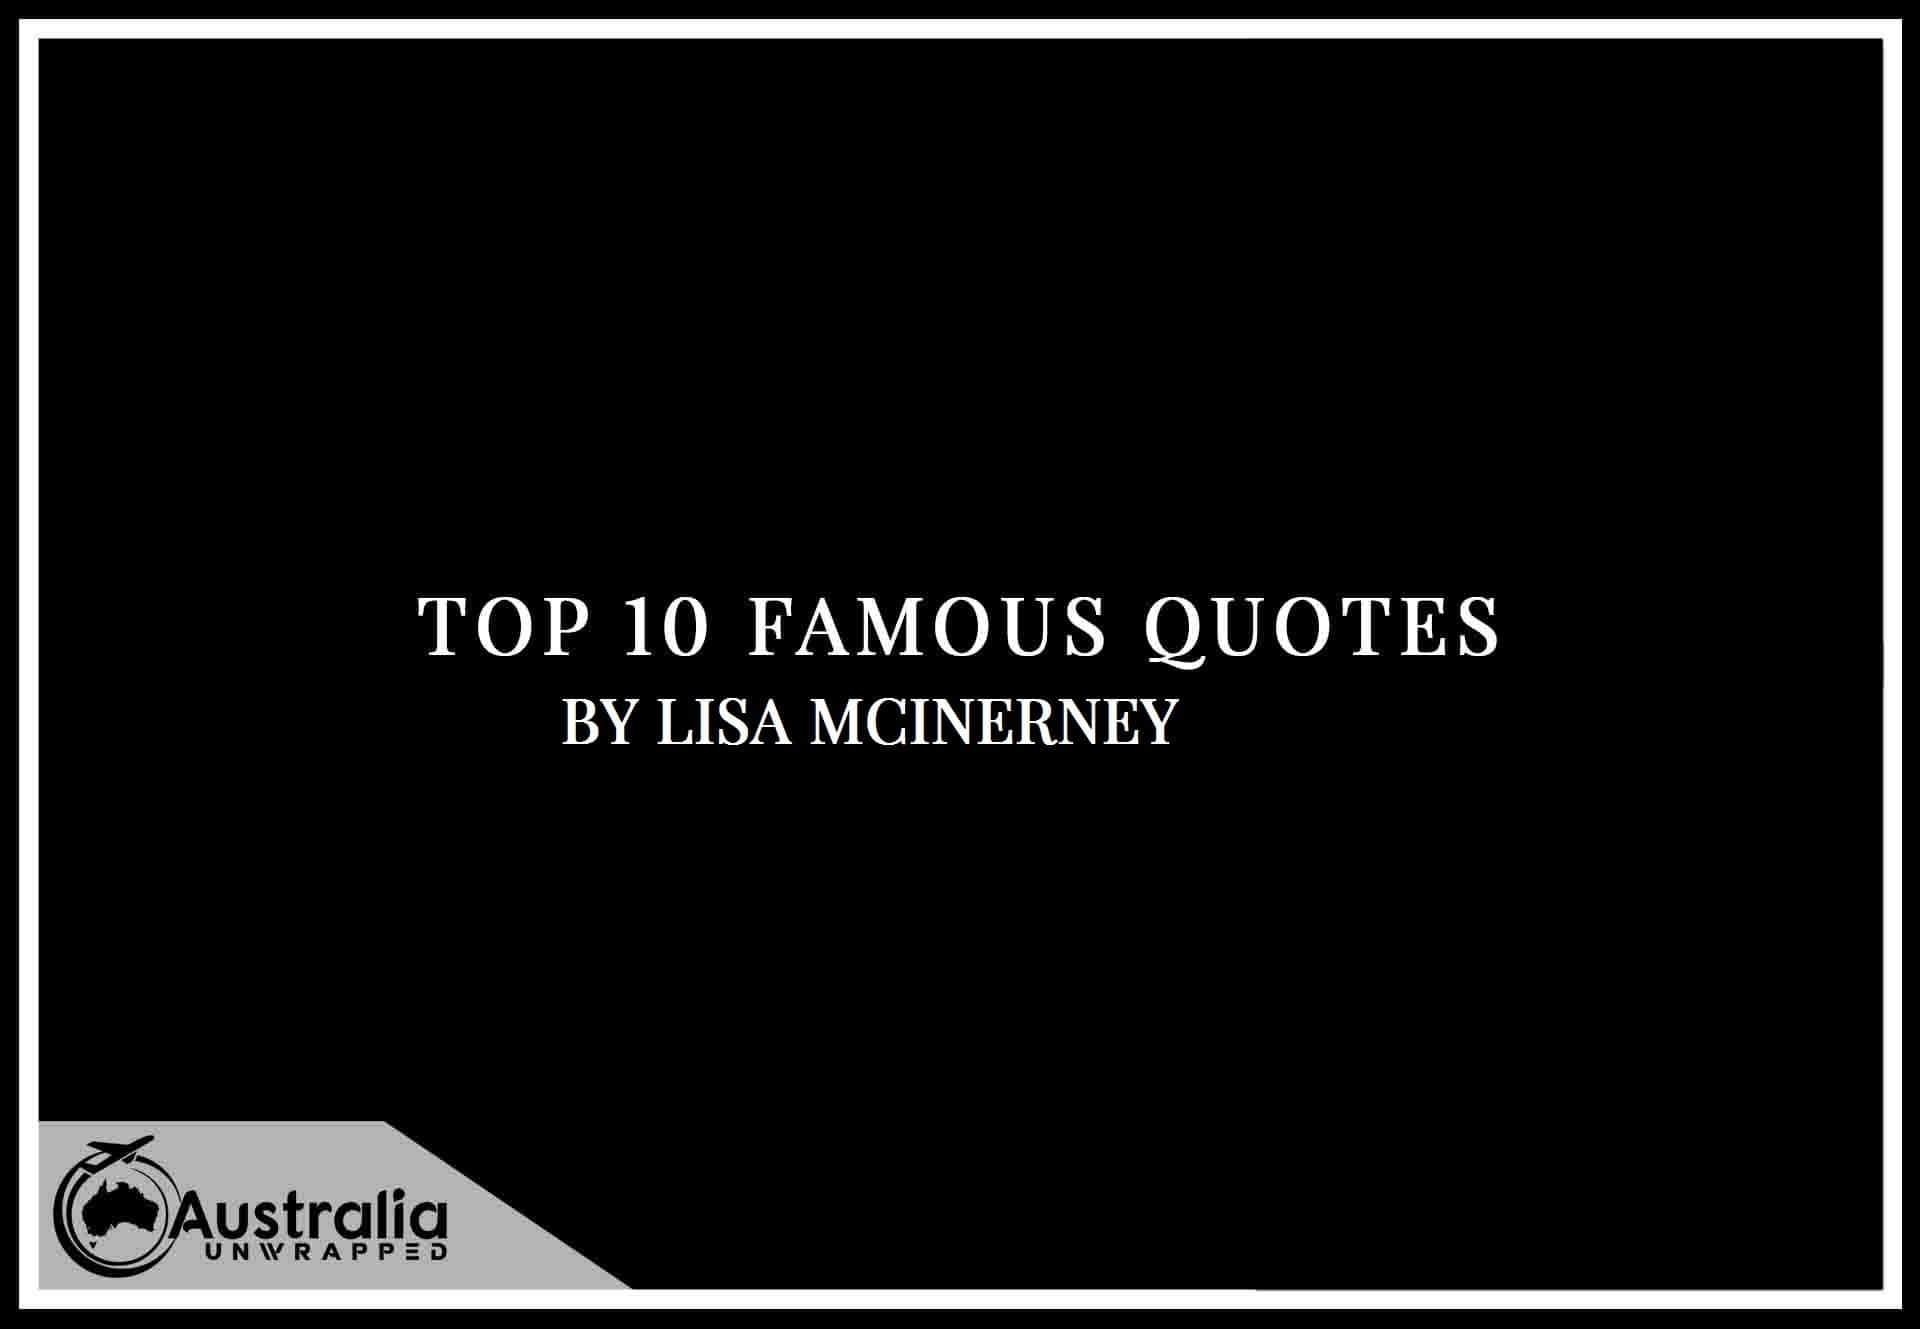 Lisa McInerney's Top 10 Popular and Famous Quotes